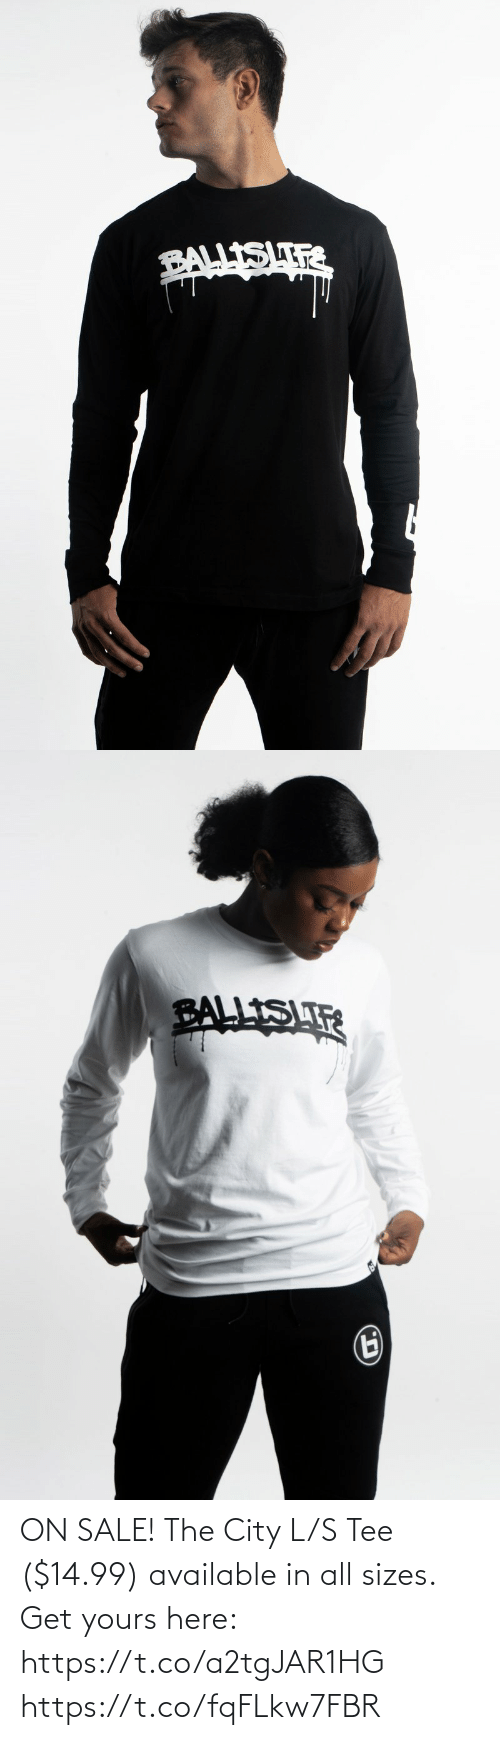 tee: ON SALE! The City L/S Tee ($14.99) available in all sizes.  Get yours here: https://t.co/a2tgJAR1HG https://t.co/fqFLkw7FBR